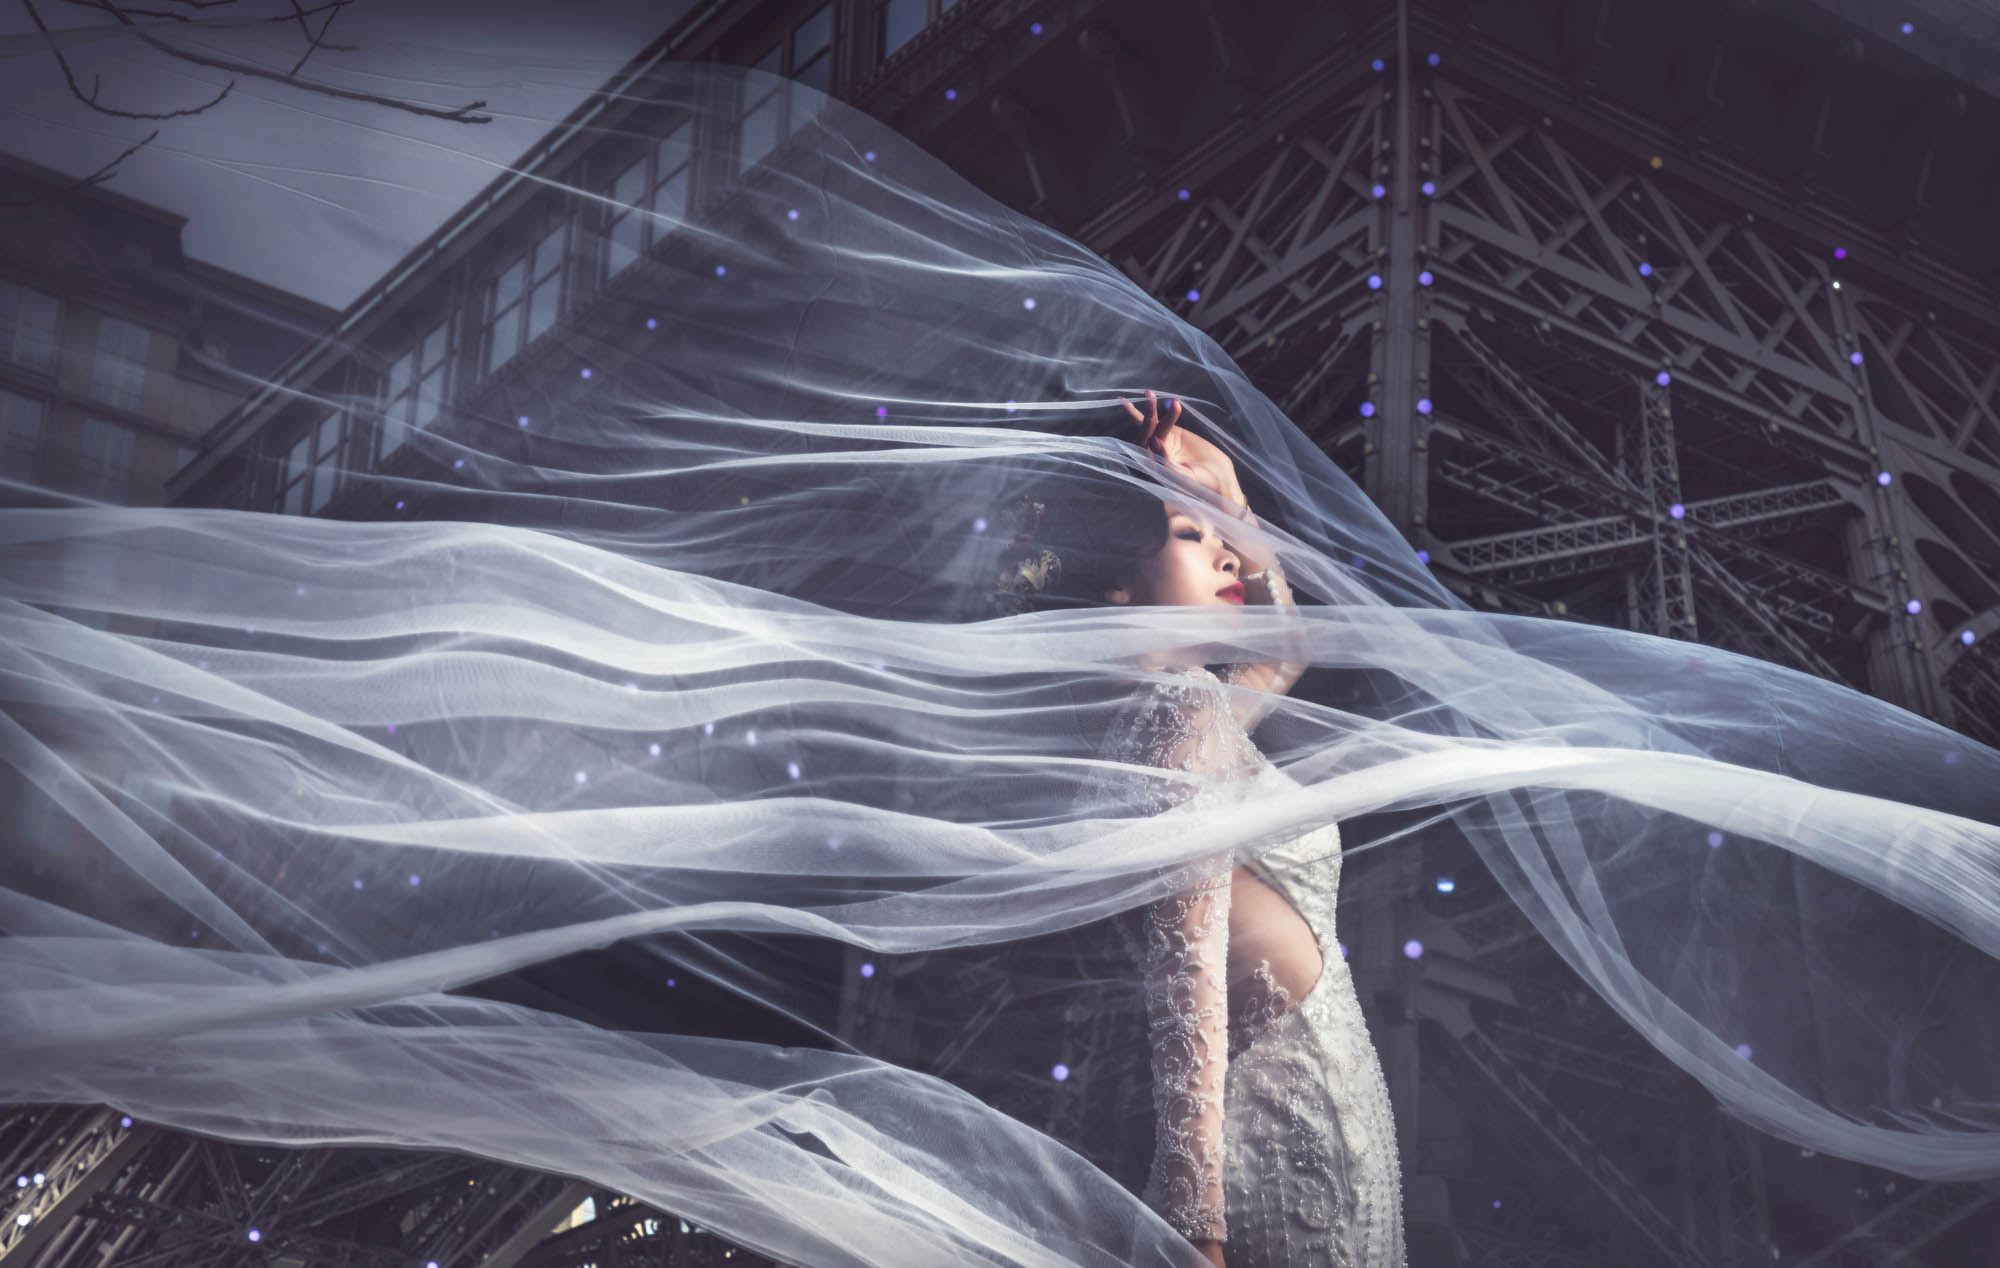 Bride with flowing veil in surreal shot, by CM Leung